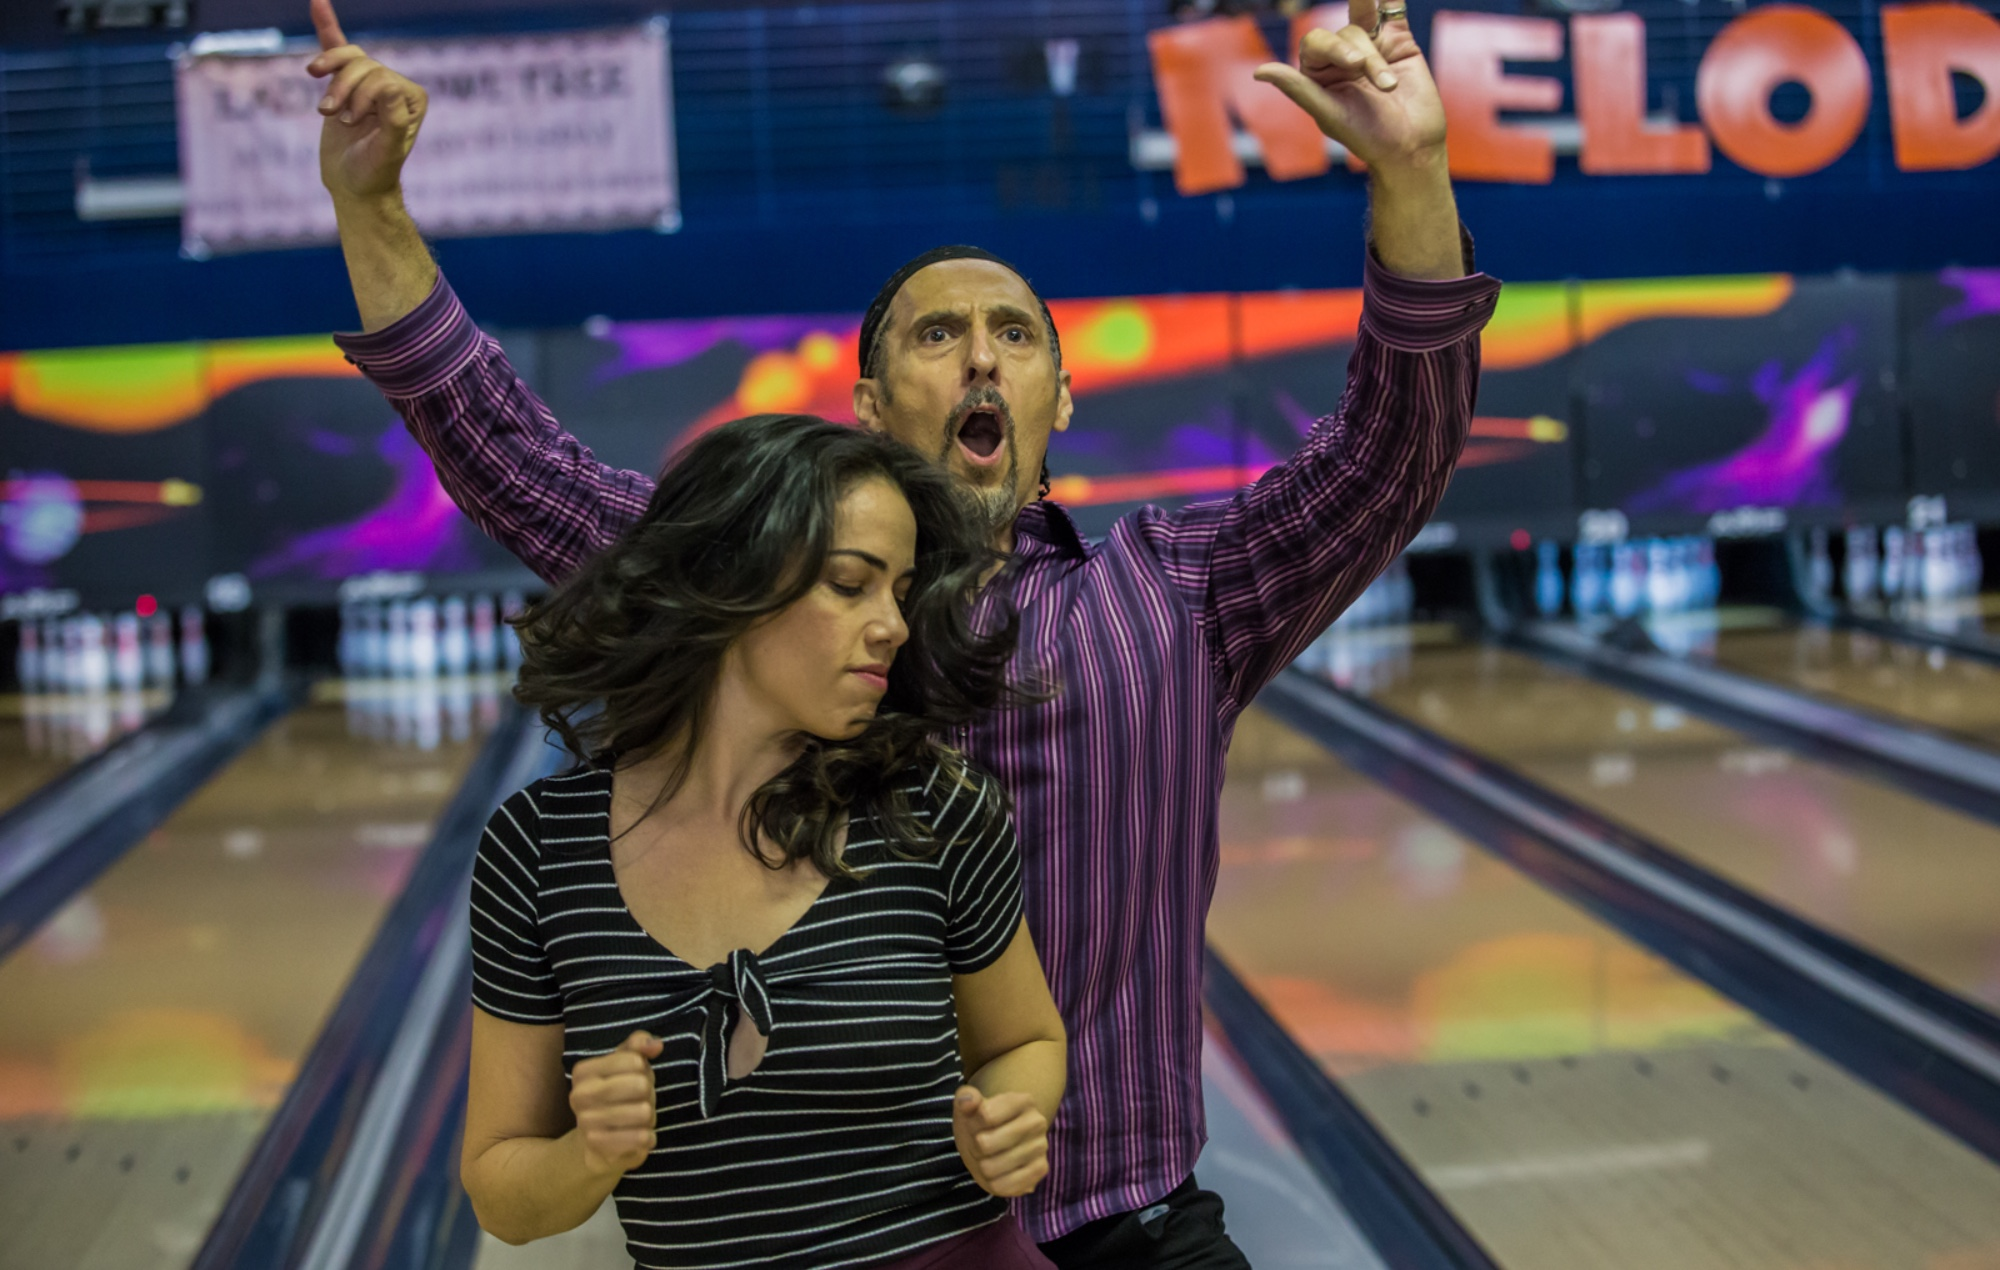 First trailer for 'The Big Lebowski' spin-off 'The Jesus Rolls' drops